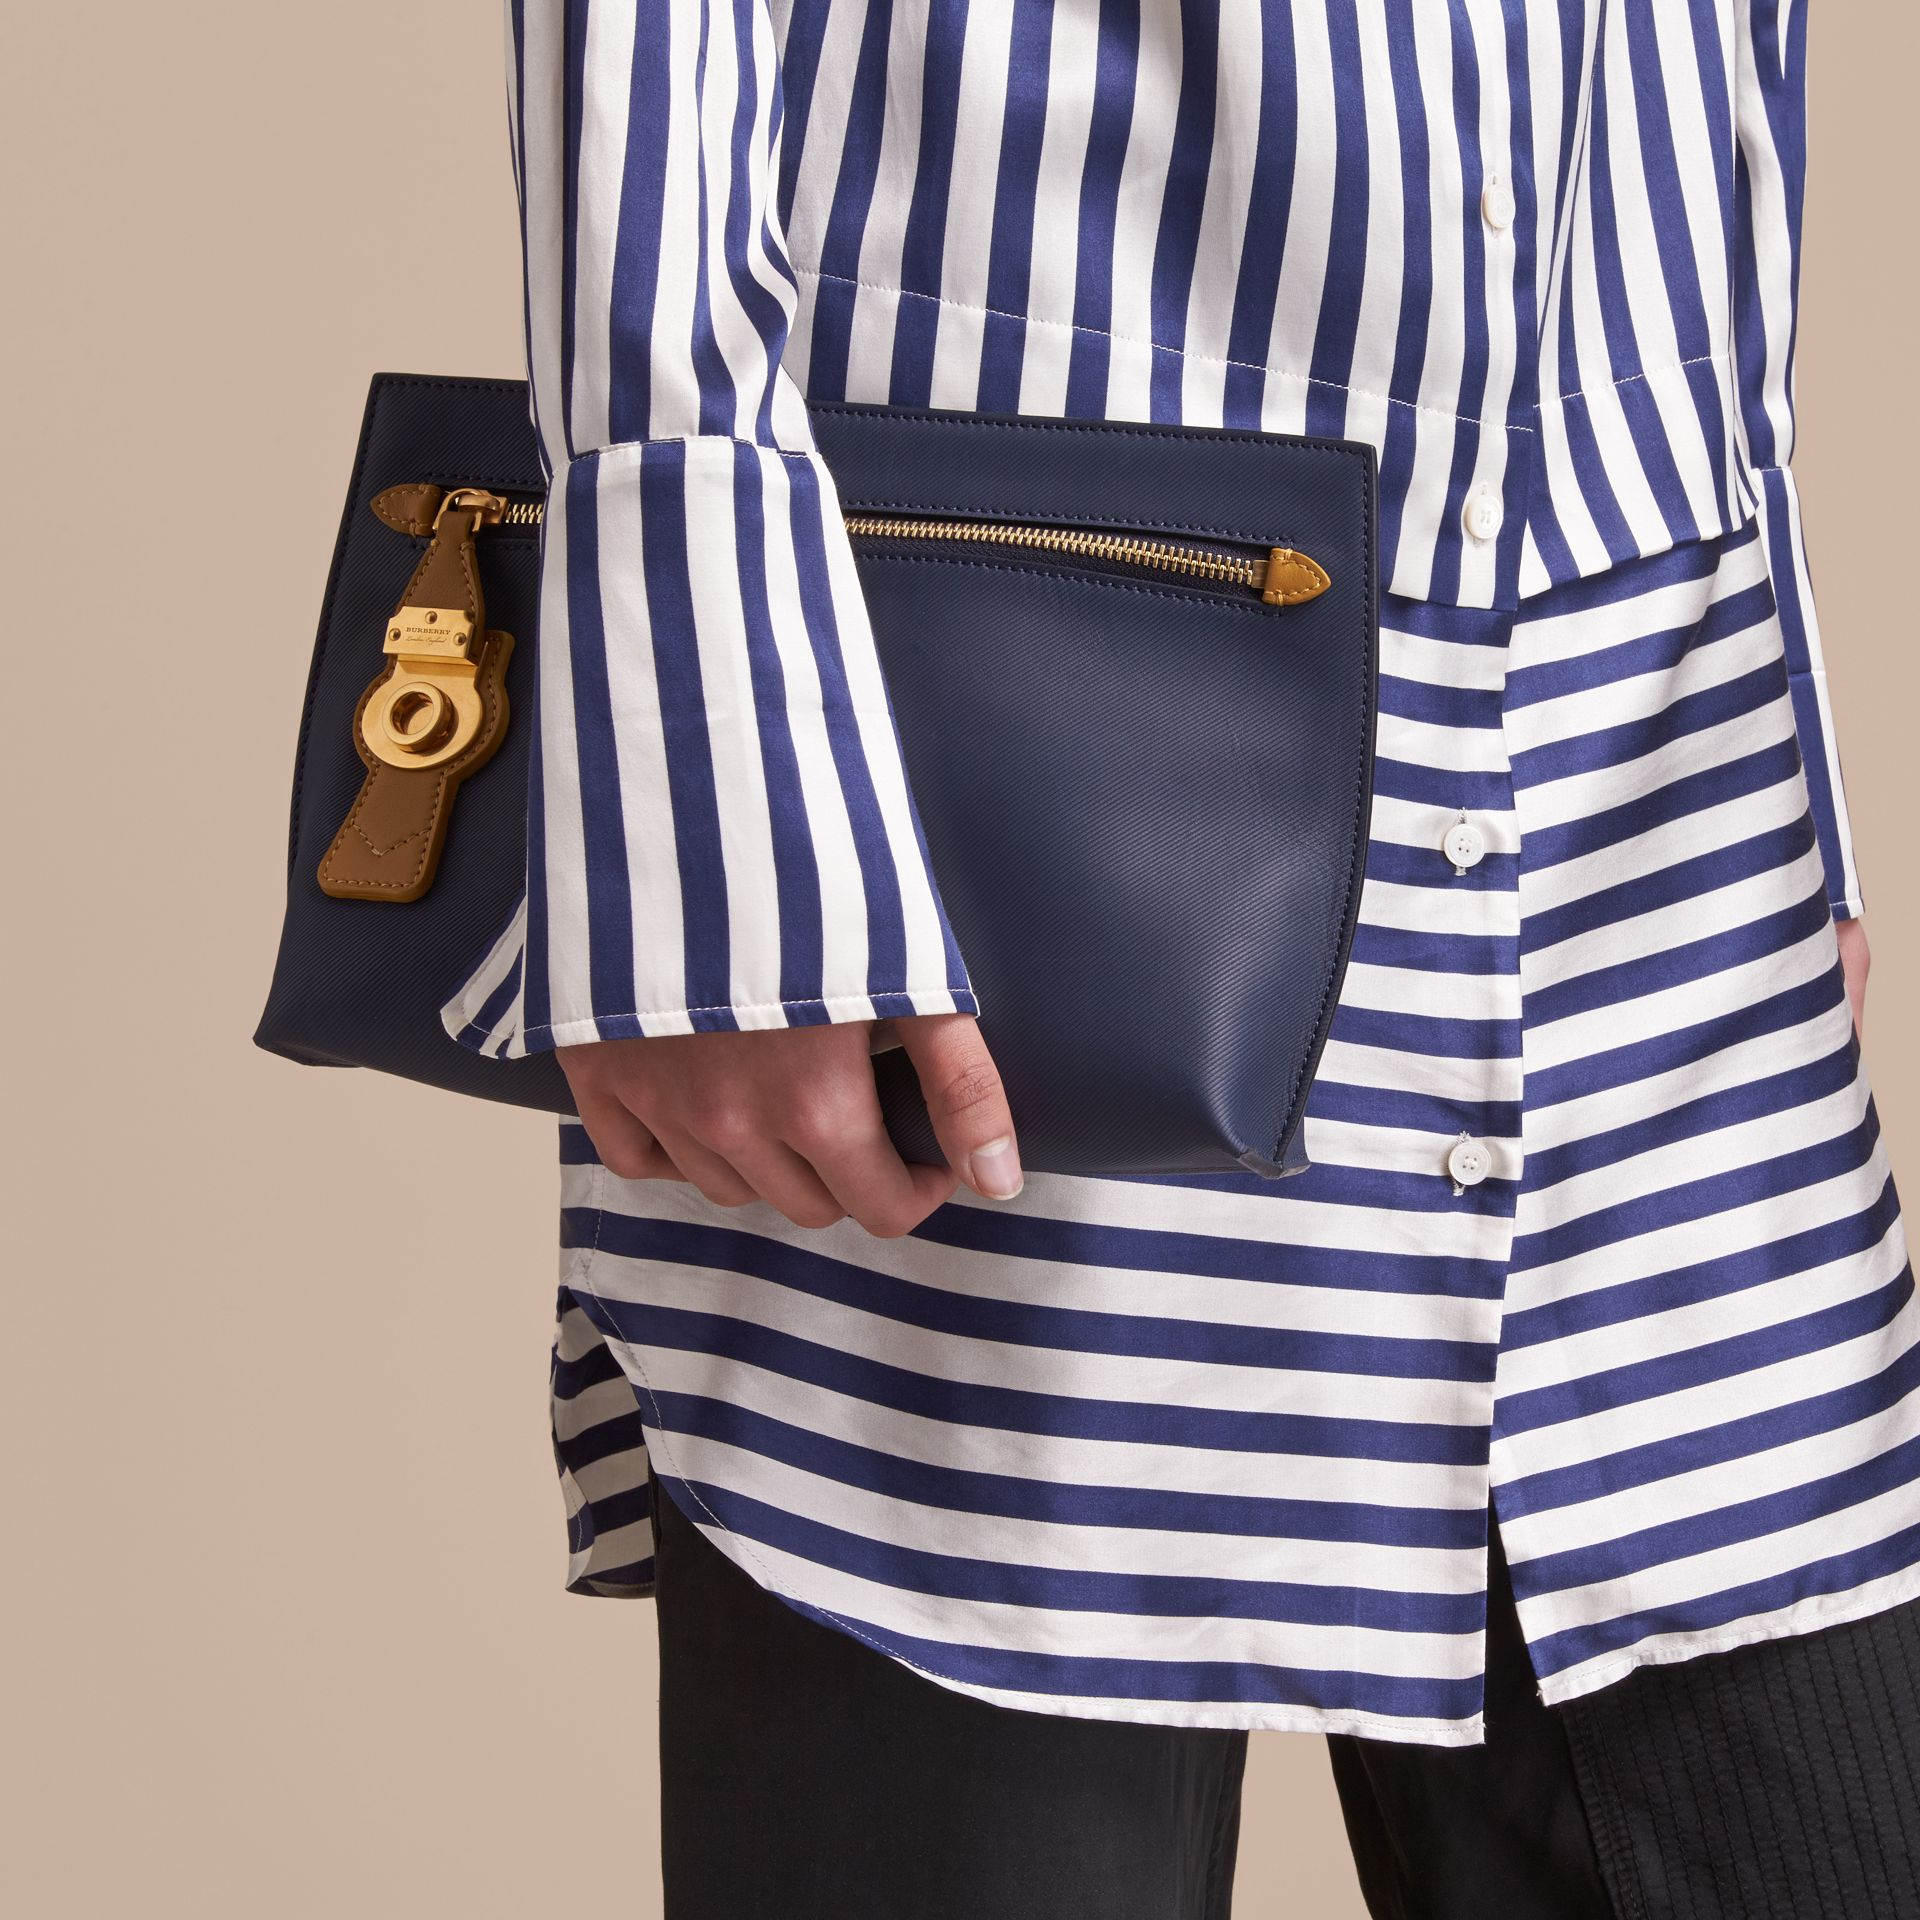 Two-tone Trench Leather Wristlet Pouch in Ink Blue/ochre Yellow - Women | Burberry Australia - gallery image 3